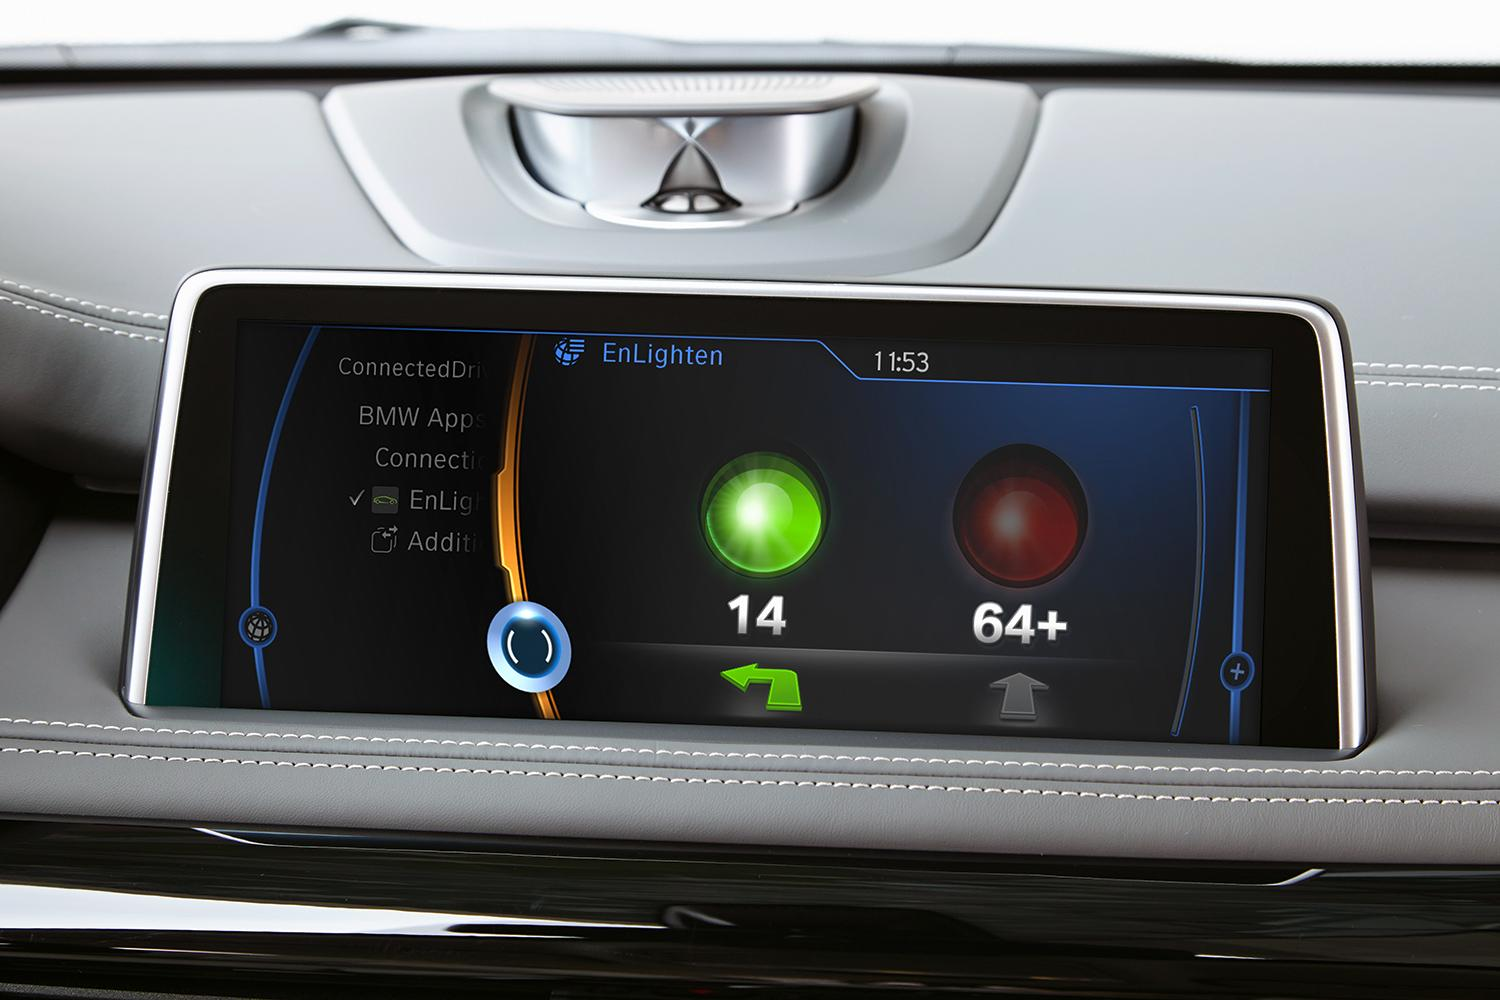 enlighten app predicts traffic lights  works with bmw apps